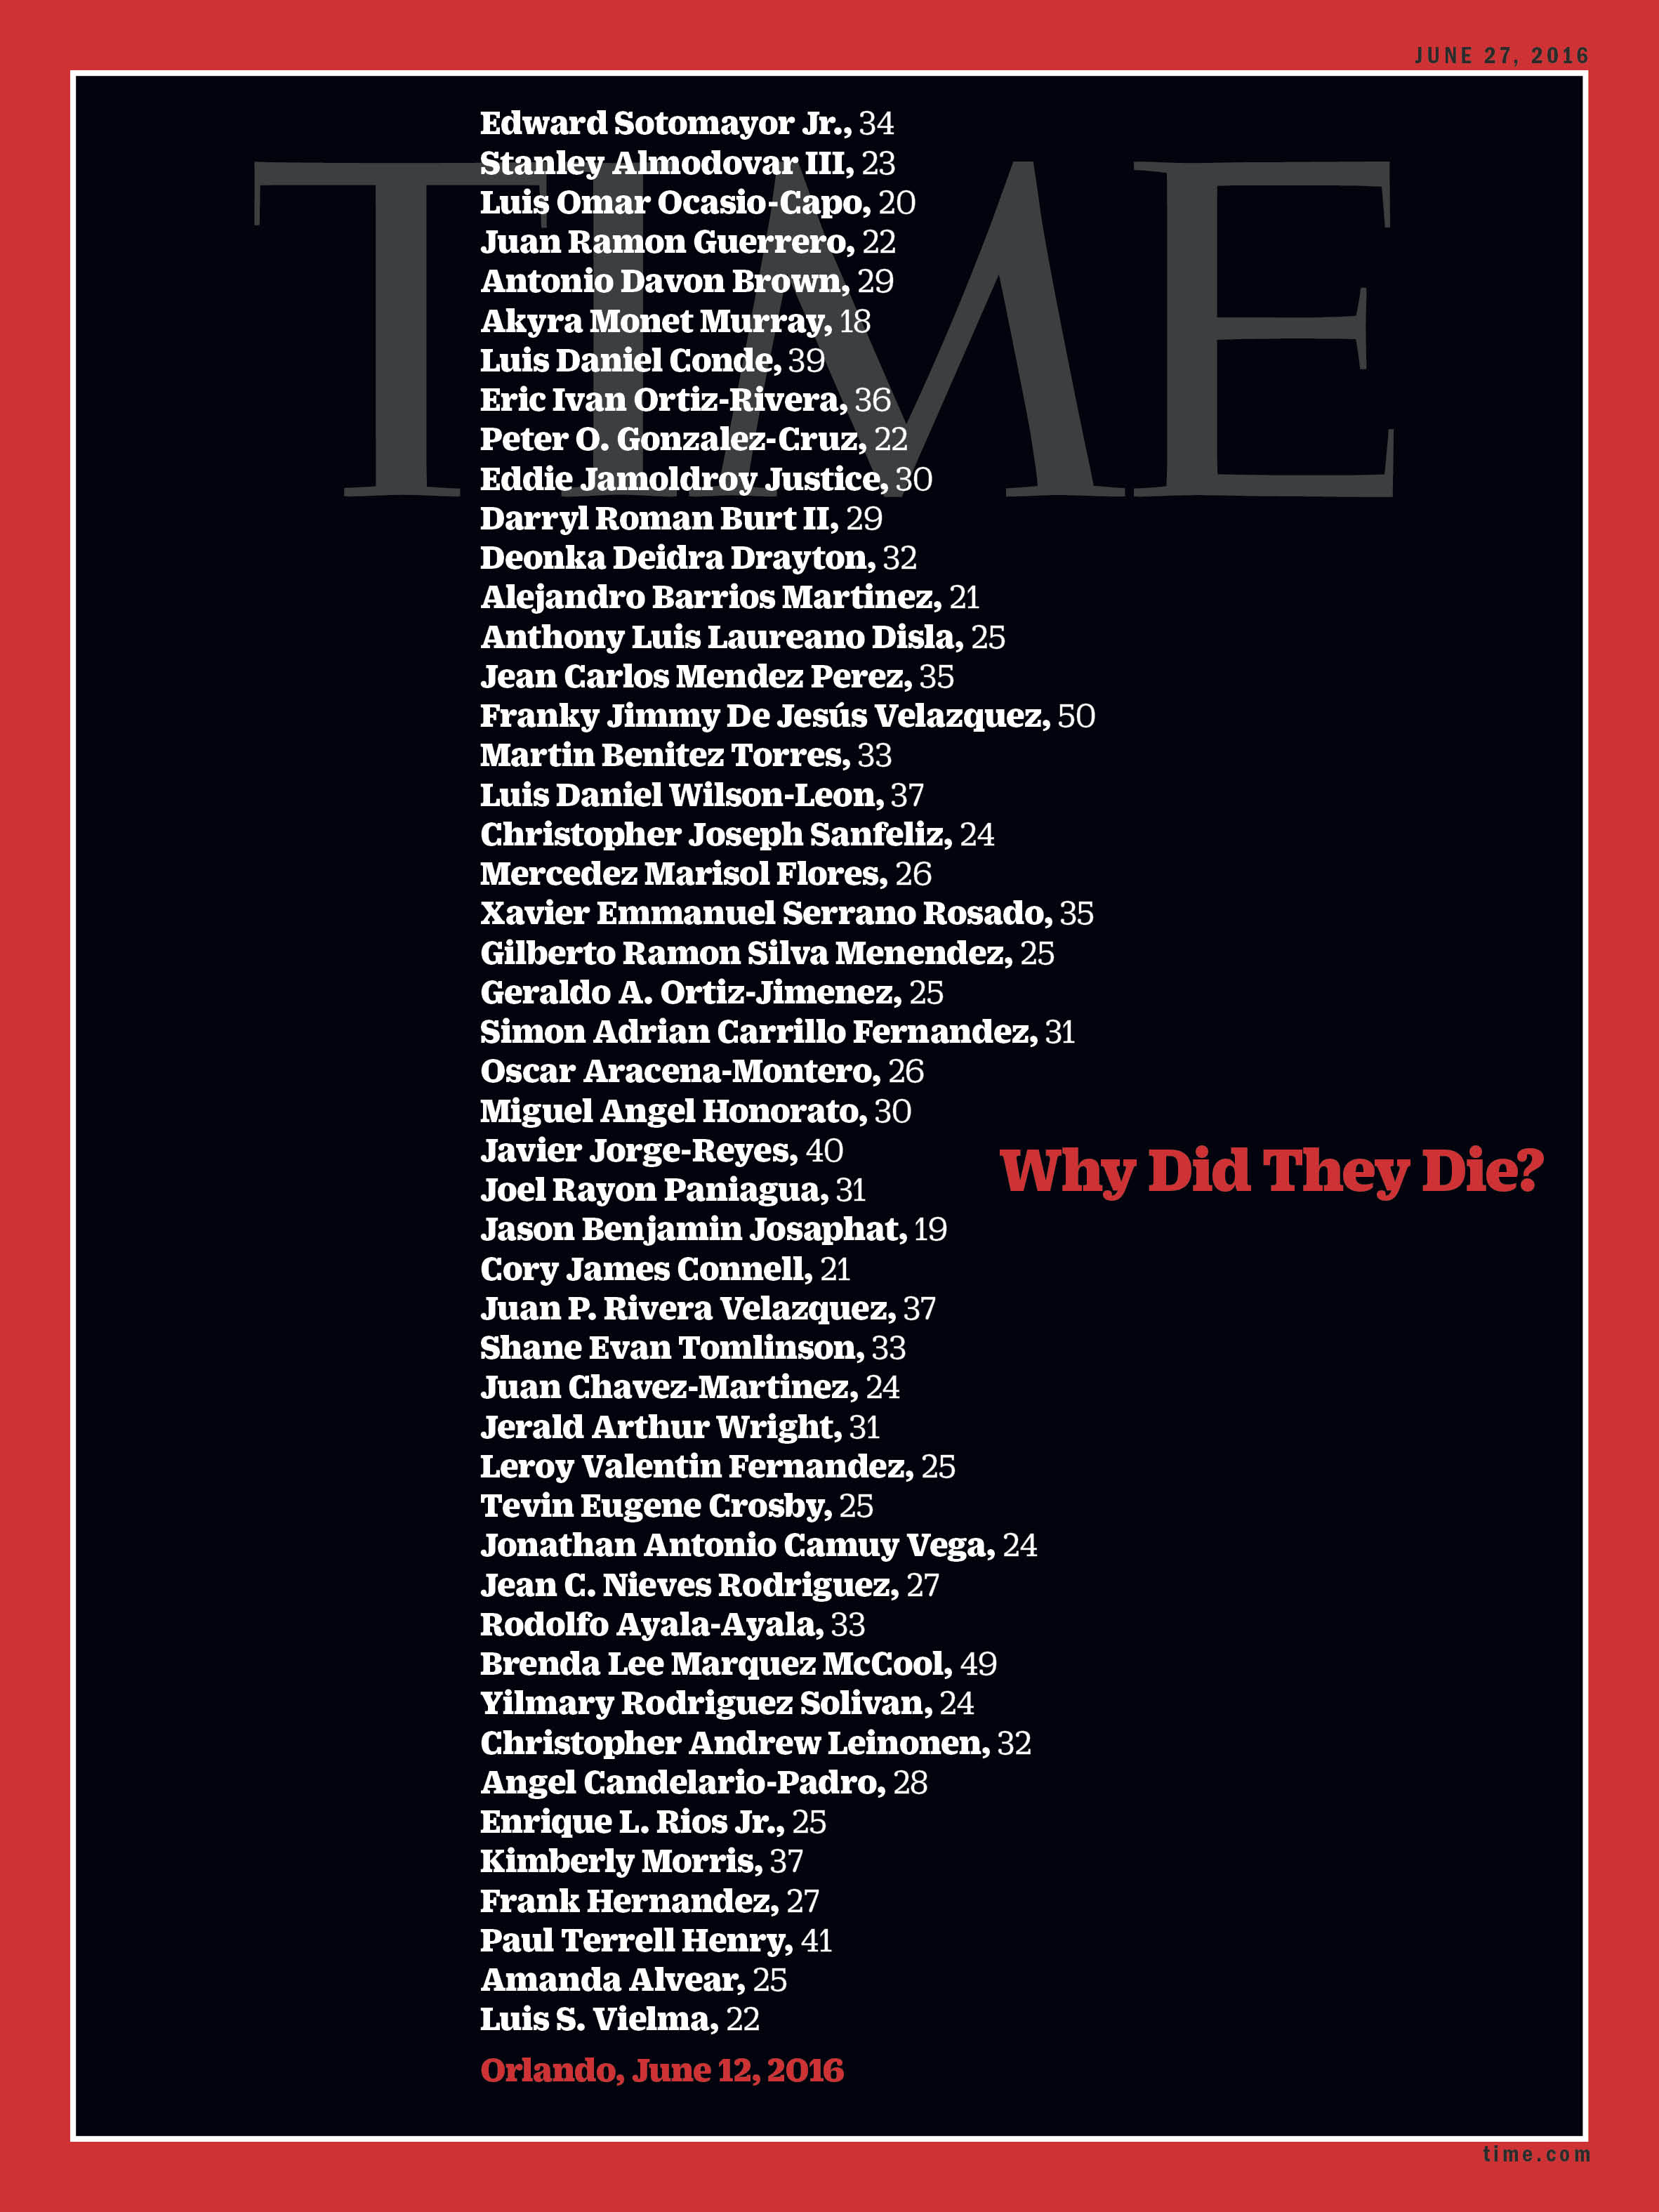 Profound Cover Of Time Magazine On Orlando Slaughter ...